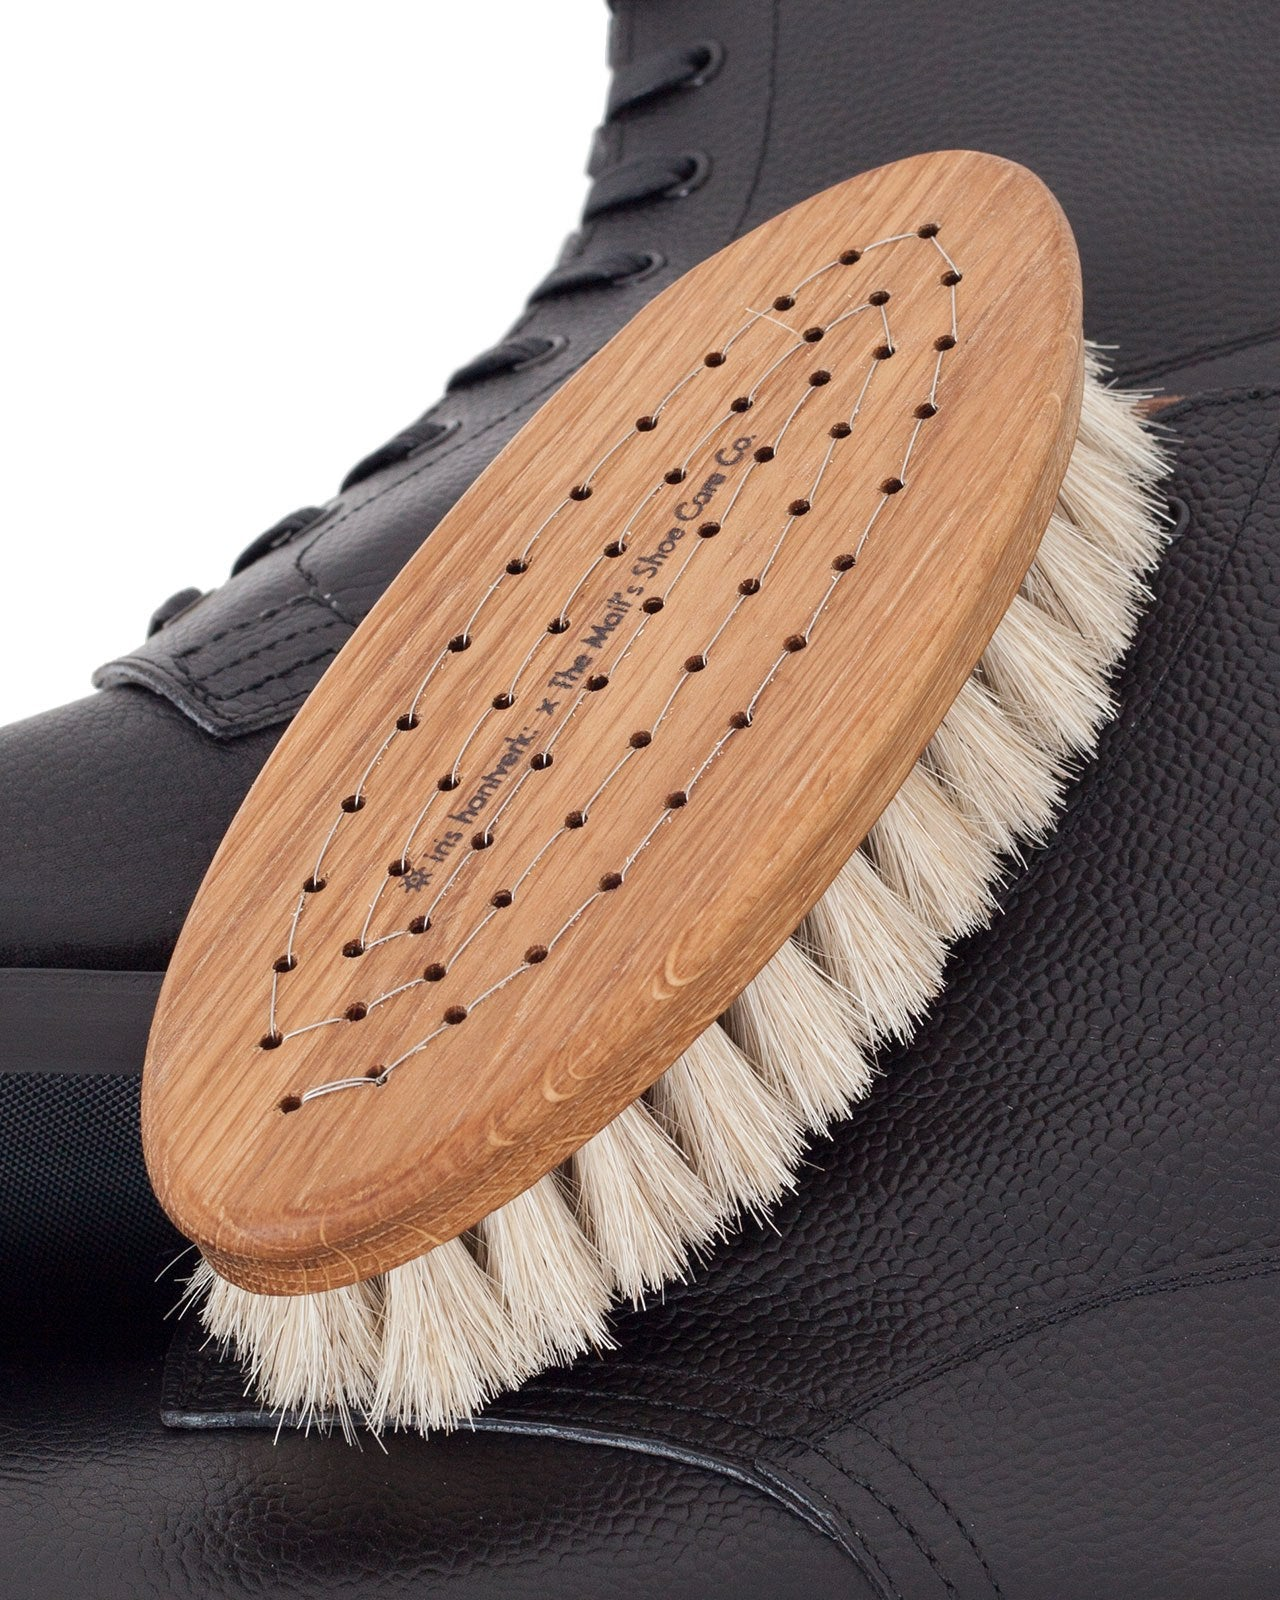 The Mail's Shoe Care Co x Iris Hantverk, Horse Brush